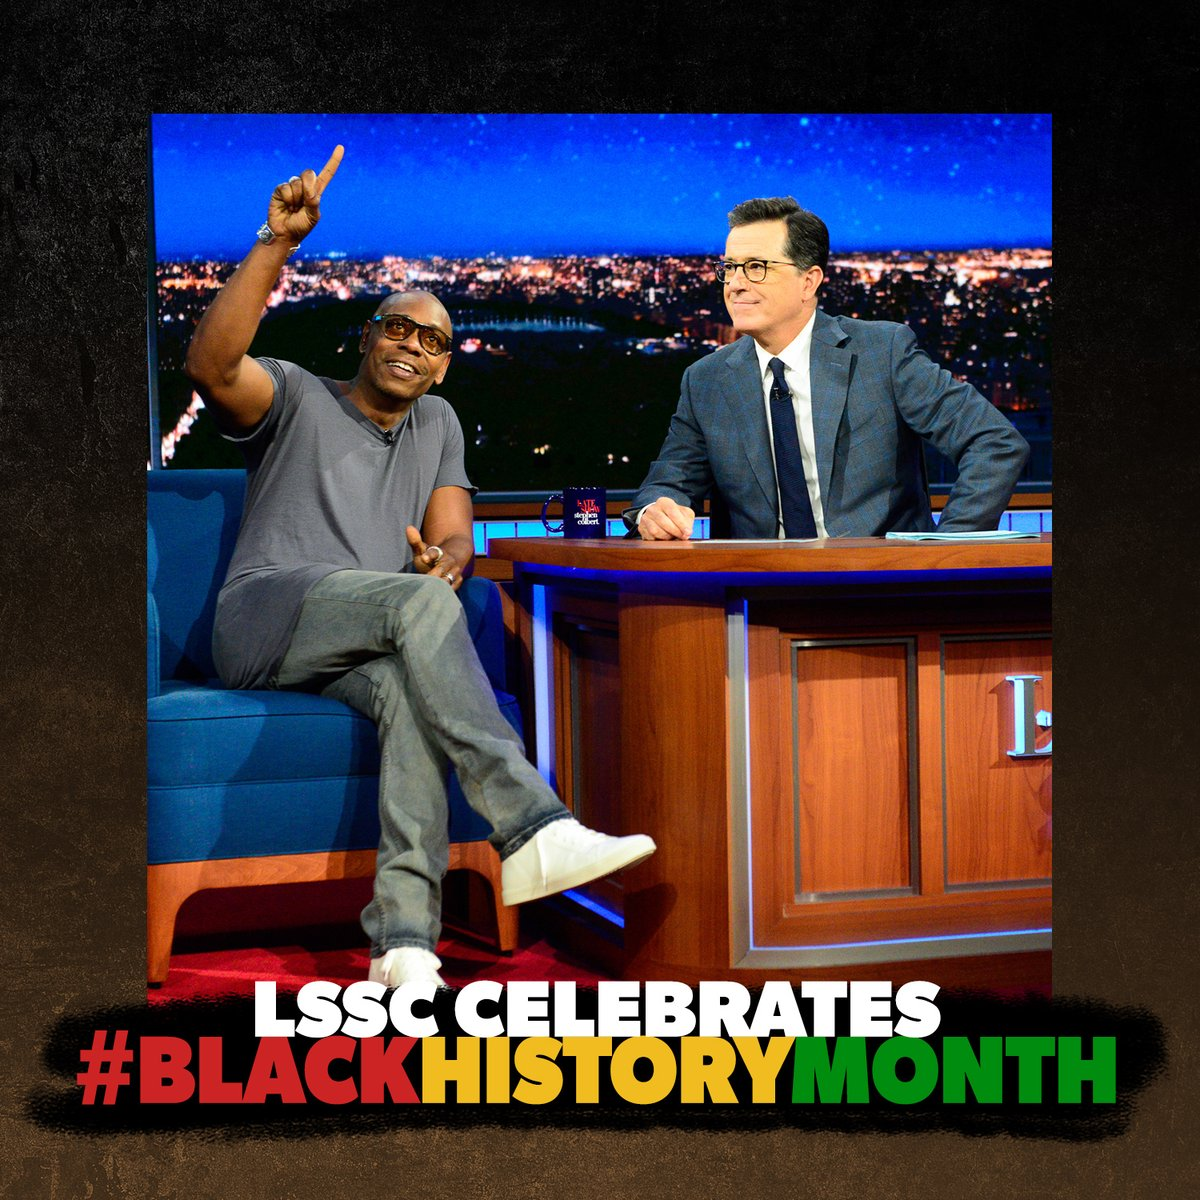 "@ArsenioHall Dave Chappelle is a comedian, actor, writer and producer who made his first visit to the Ed Sullivan Theater in 1994. The ""Chappelle's Show"" star and Mark Twain Prize recipient made his long-awaited return to the theater to interview with Stephen in 2017. #BlackHistoryMonth"